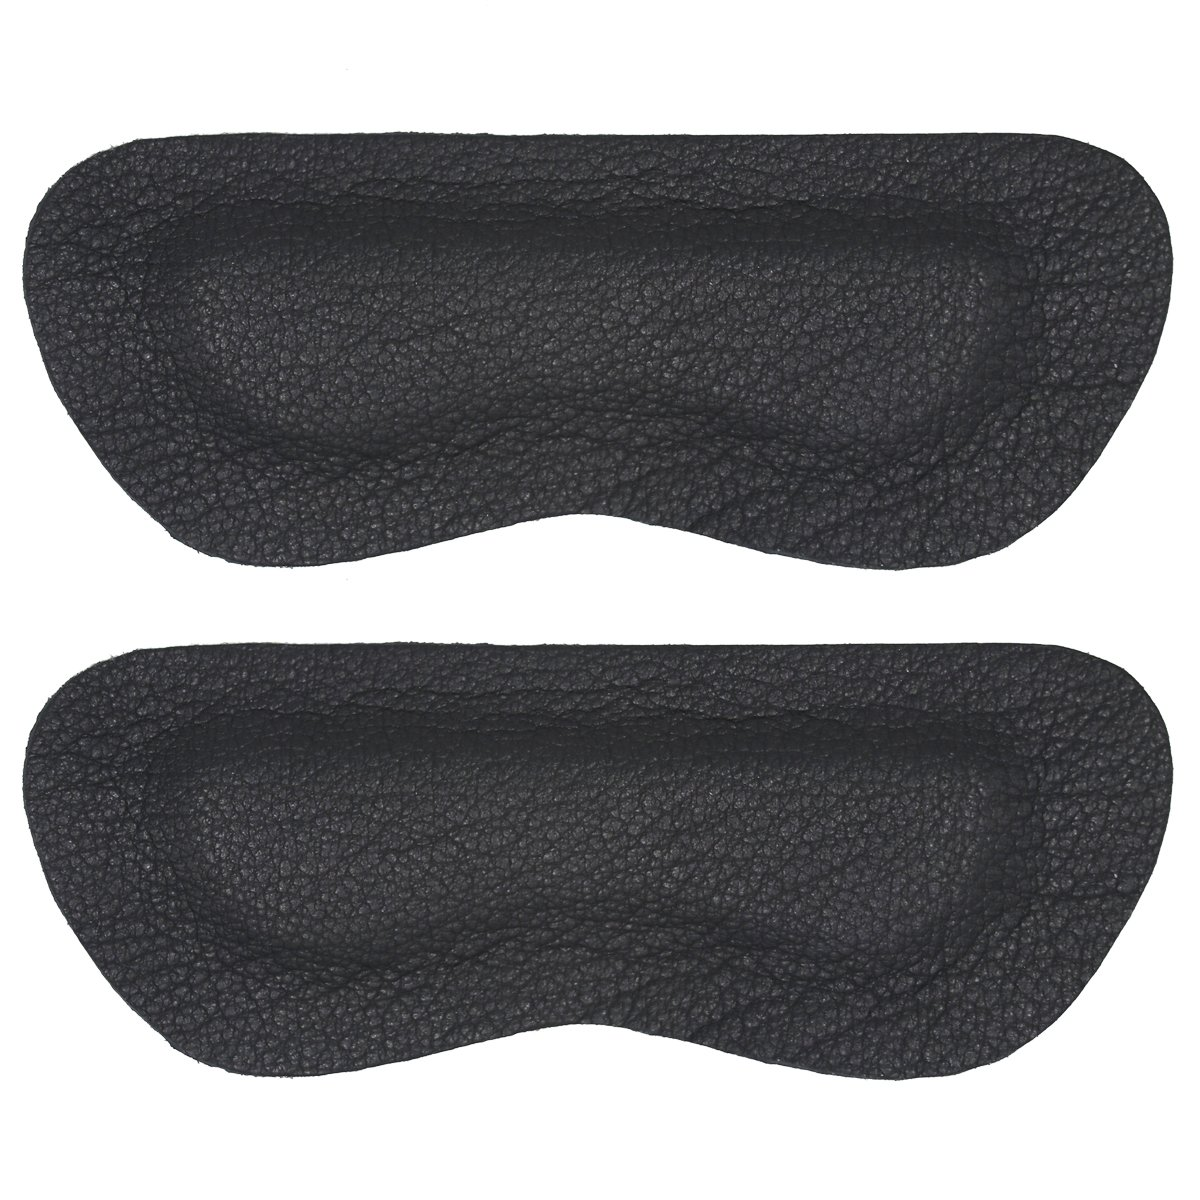 Heel Liner Heel Pads Liners Grips Inserts Cushions for Shoes too Big Women Men,Sheepskin Prevent blisters,Shoe Filler Improved Shoe Fit and Comfort,2Pairs(Black, Thick)